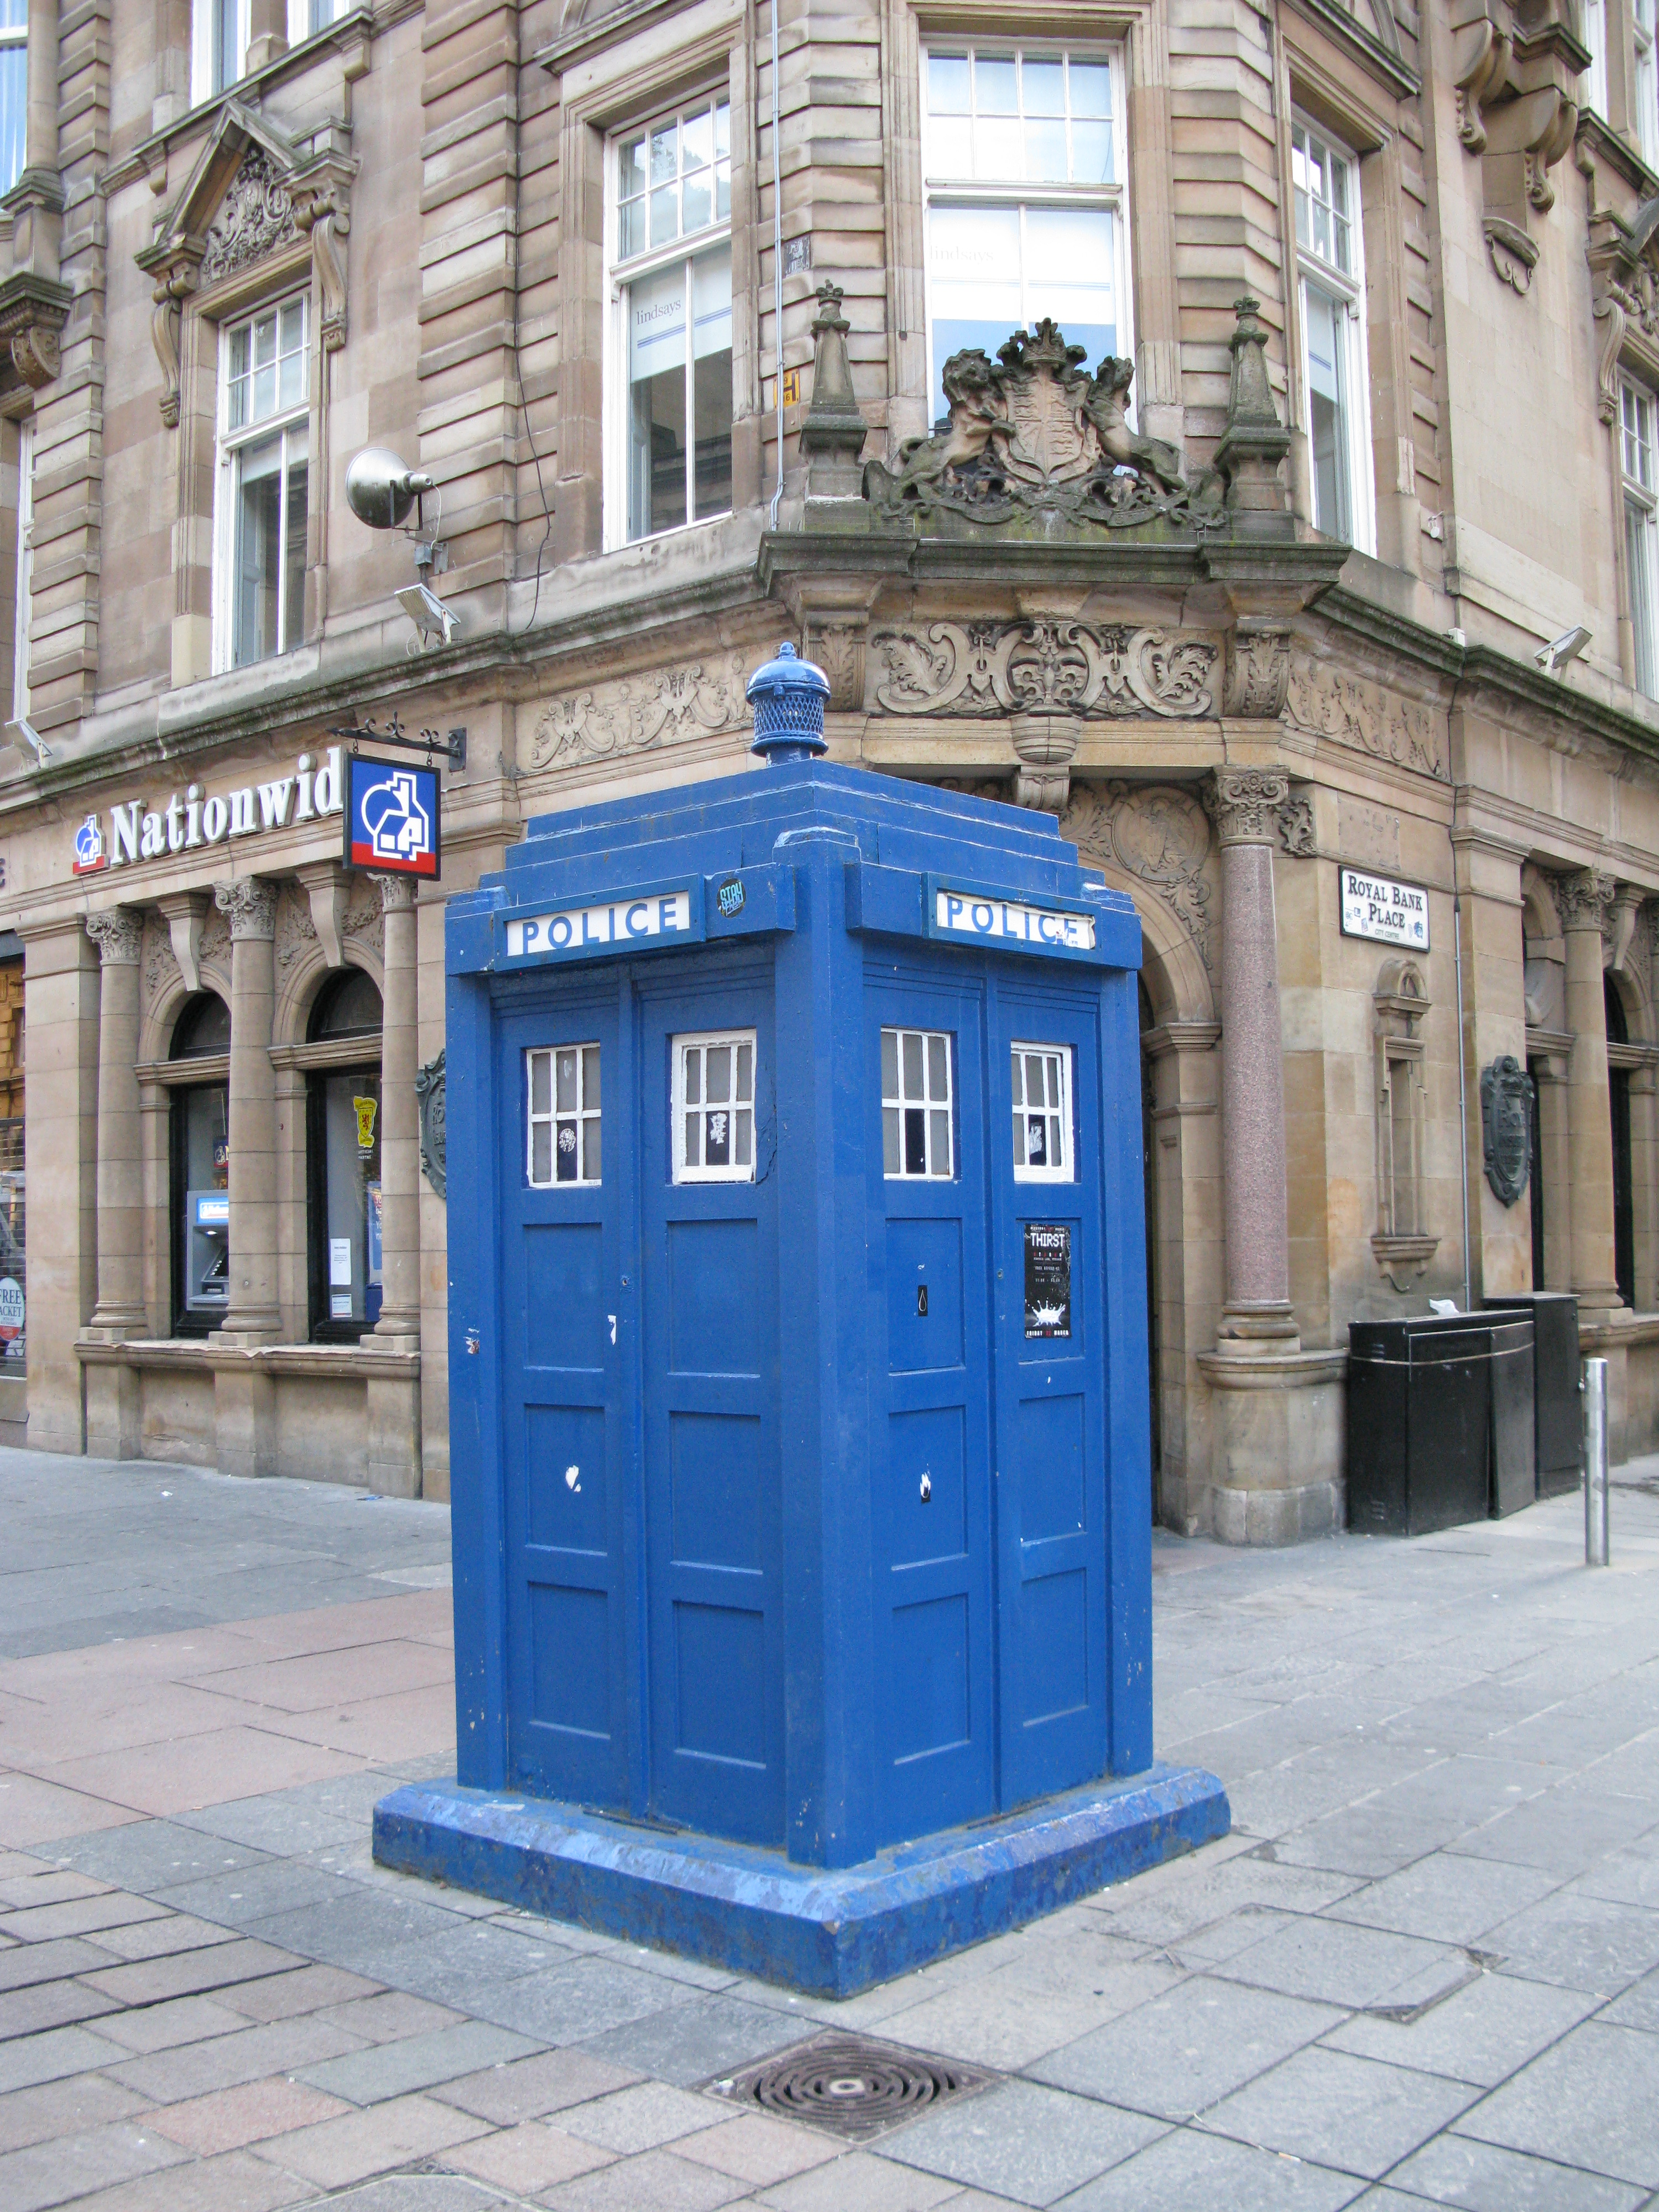 Police telephone kiosk. Glasgow, spotted while en route to the start of the West Highland Way